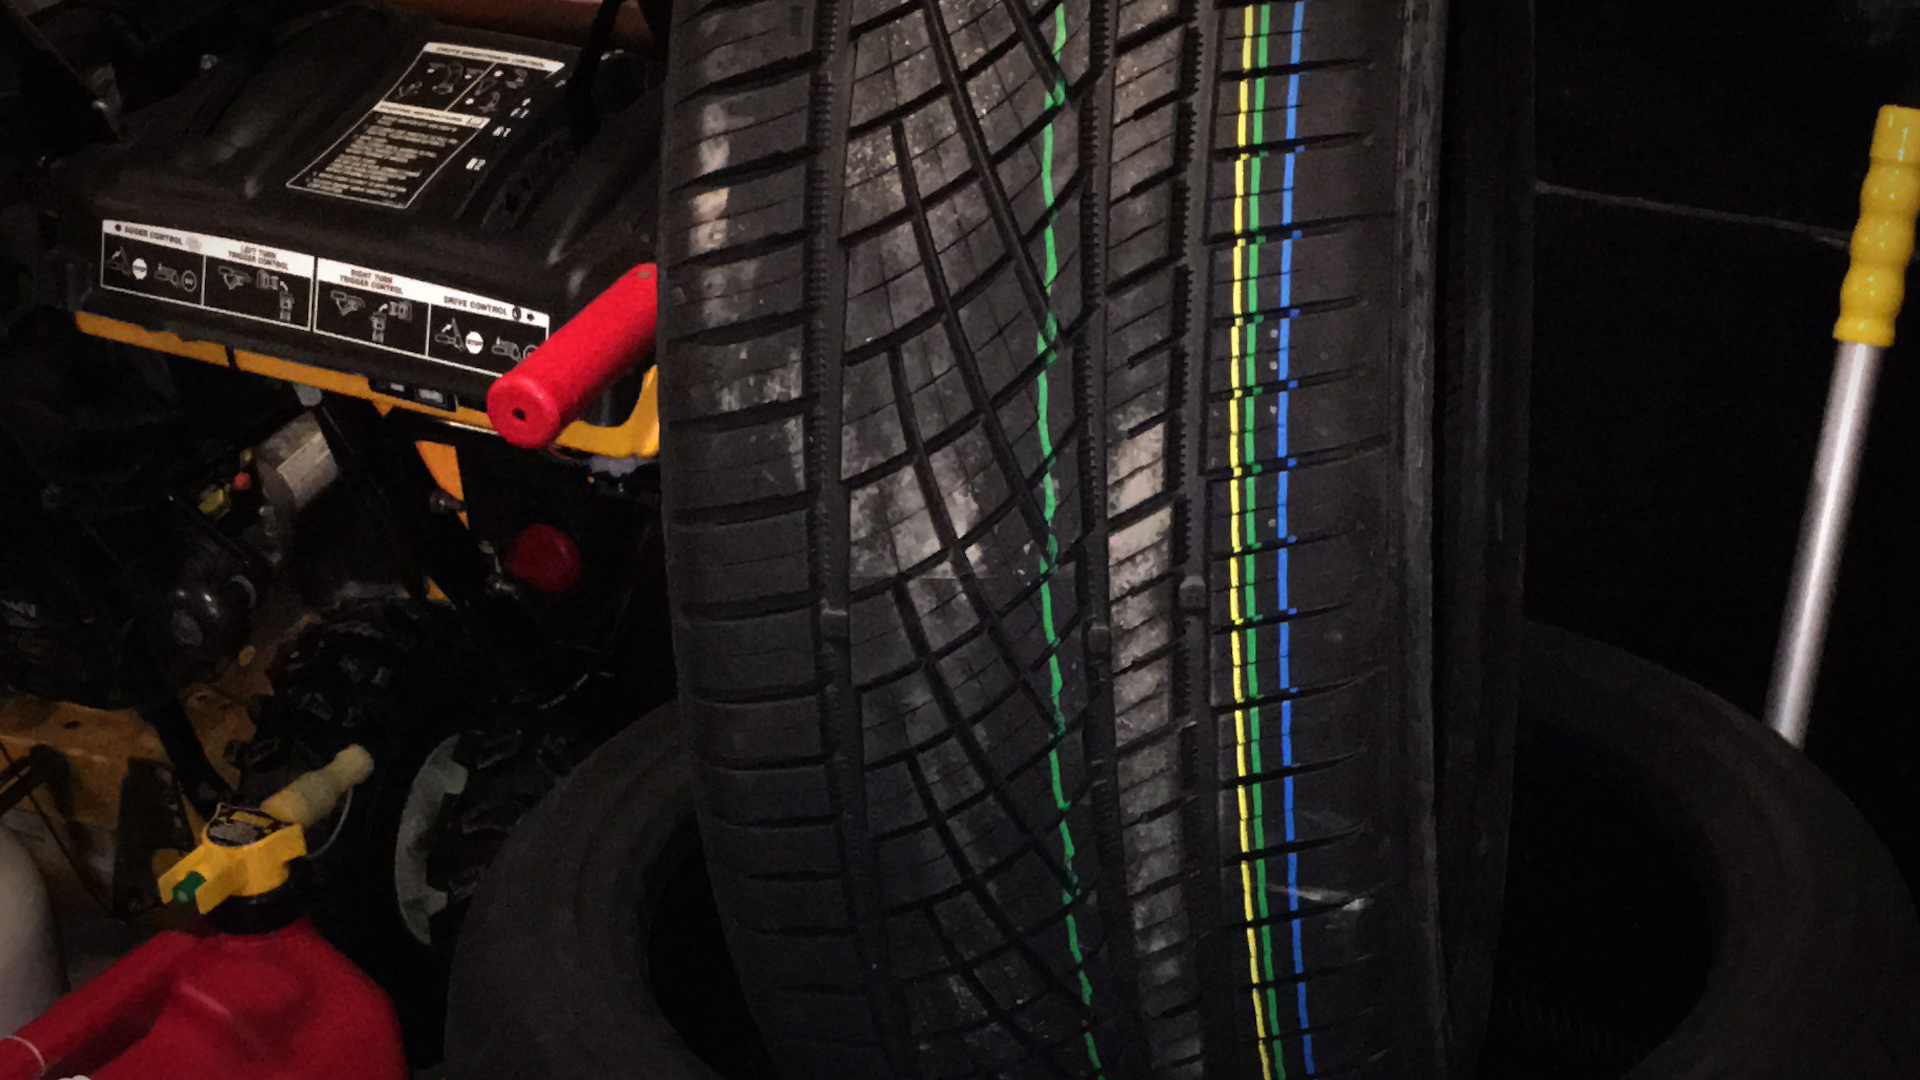 Video: Your emails: What do the color stripes mean on your tires?